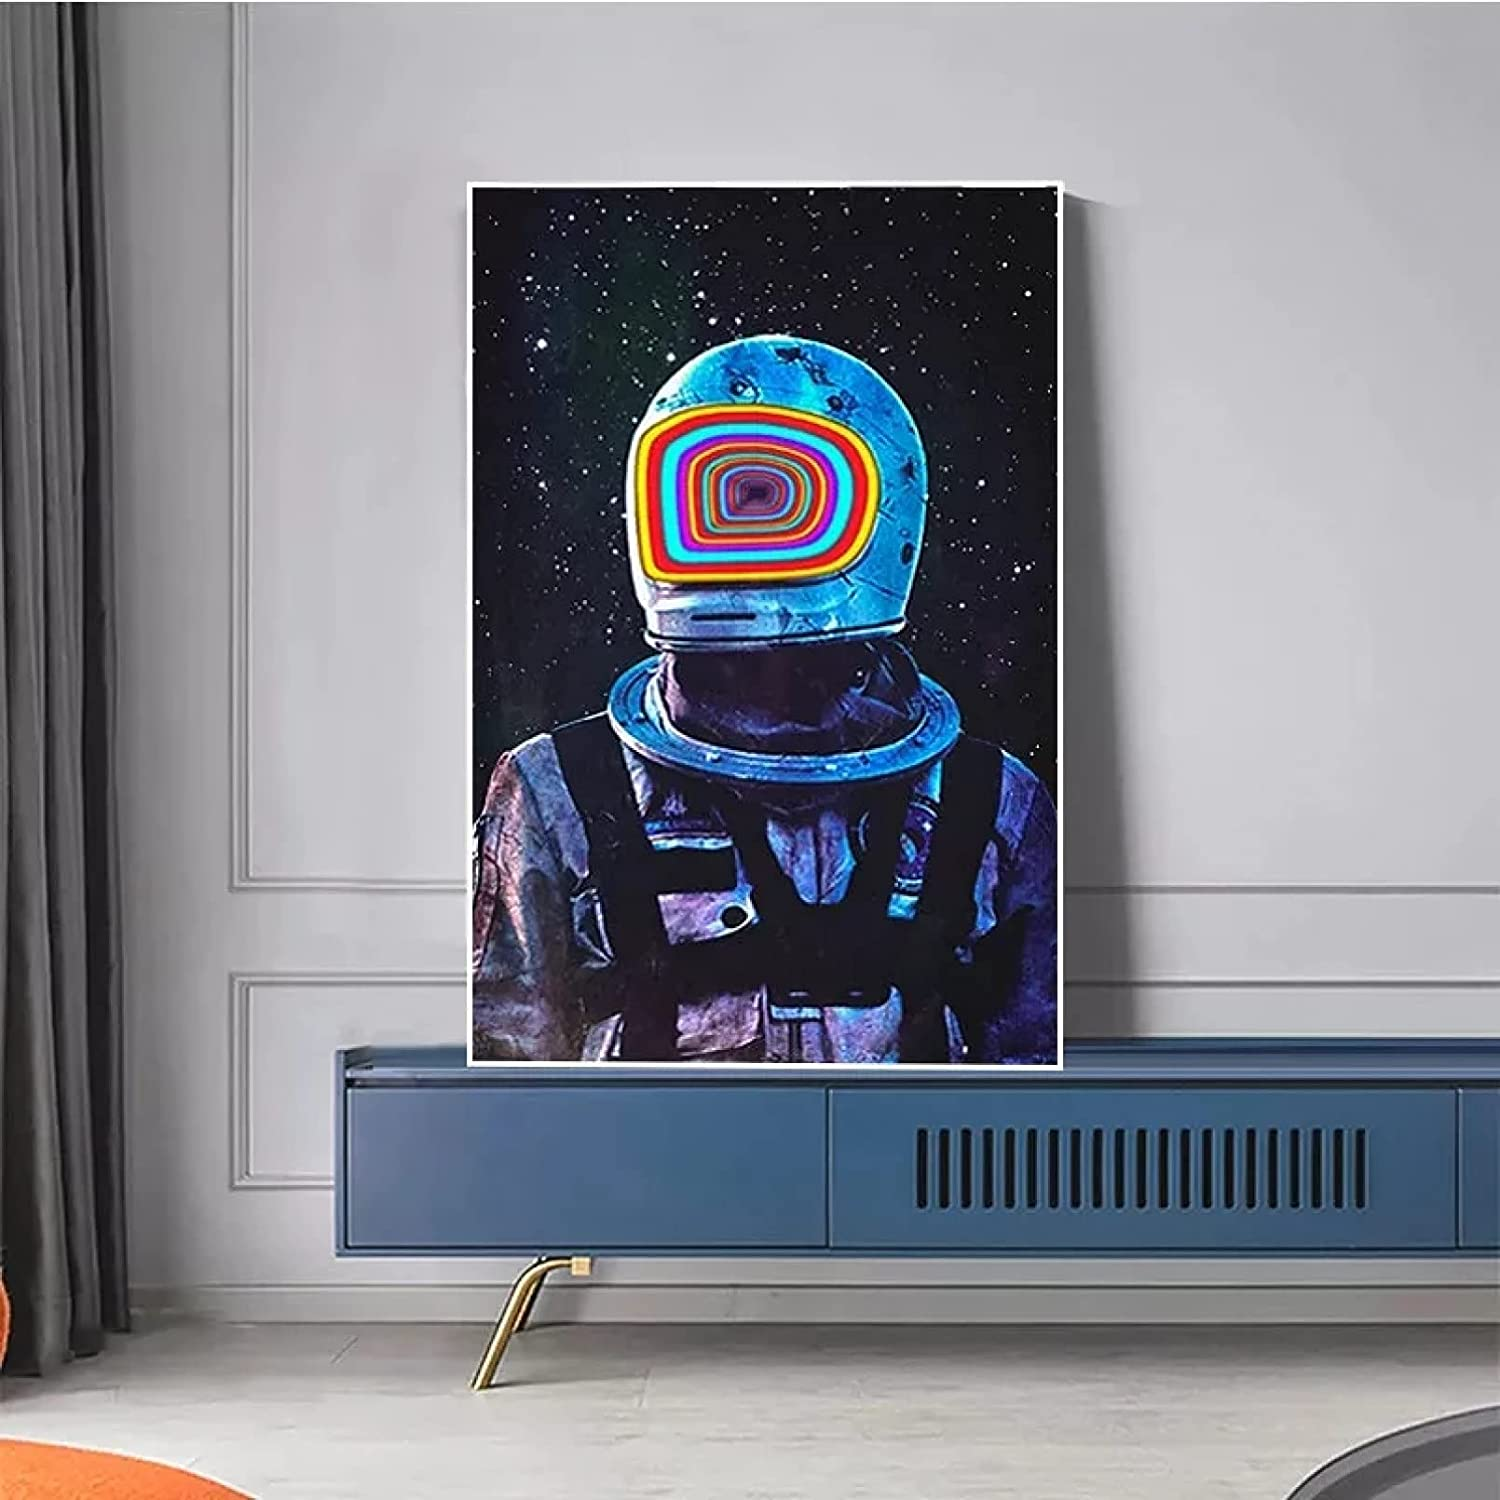 Home Decoration Painting Pop Art Max 61% OFF Can Cheap sale Abstract Astronaut Graffiti